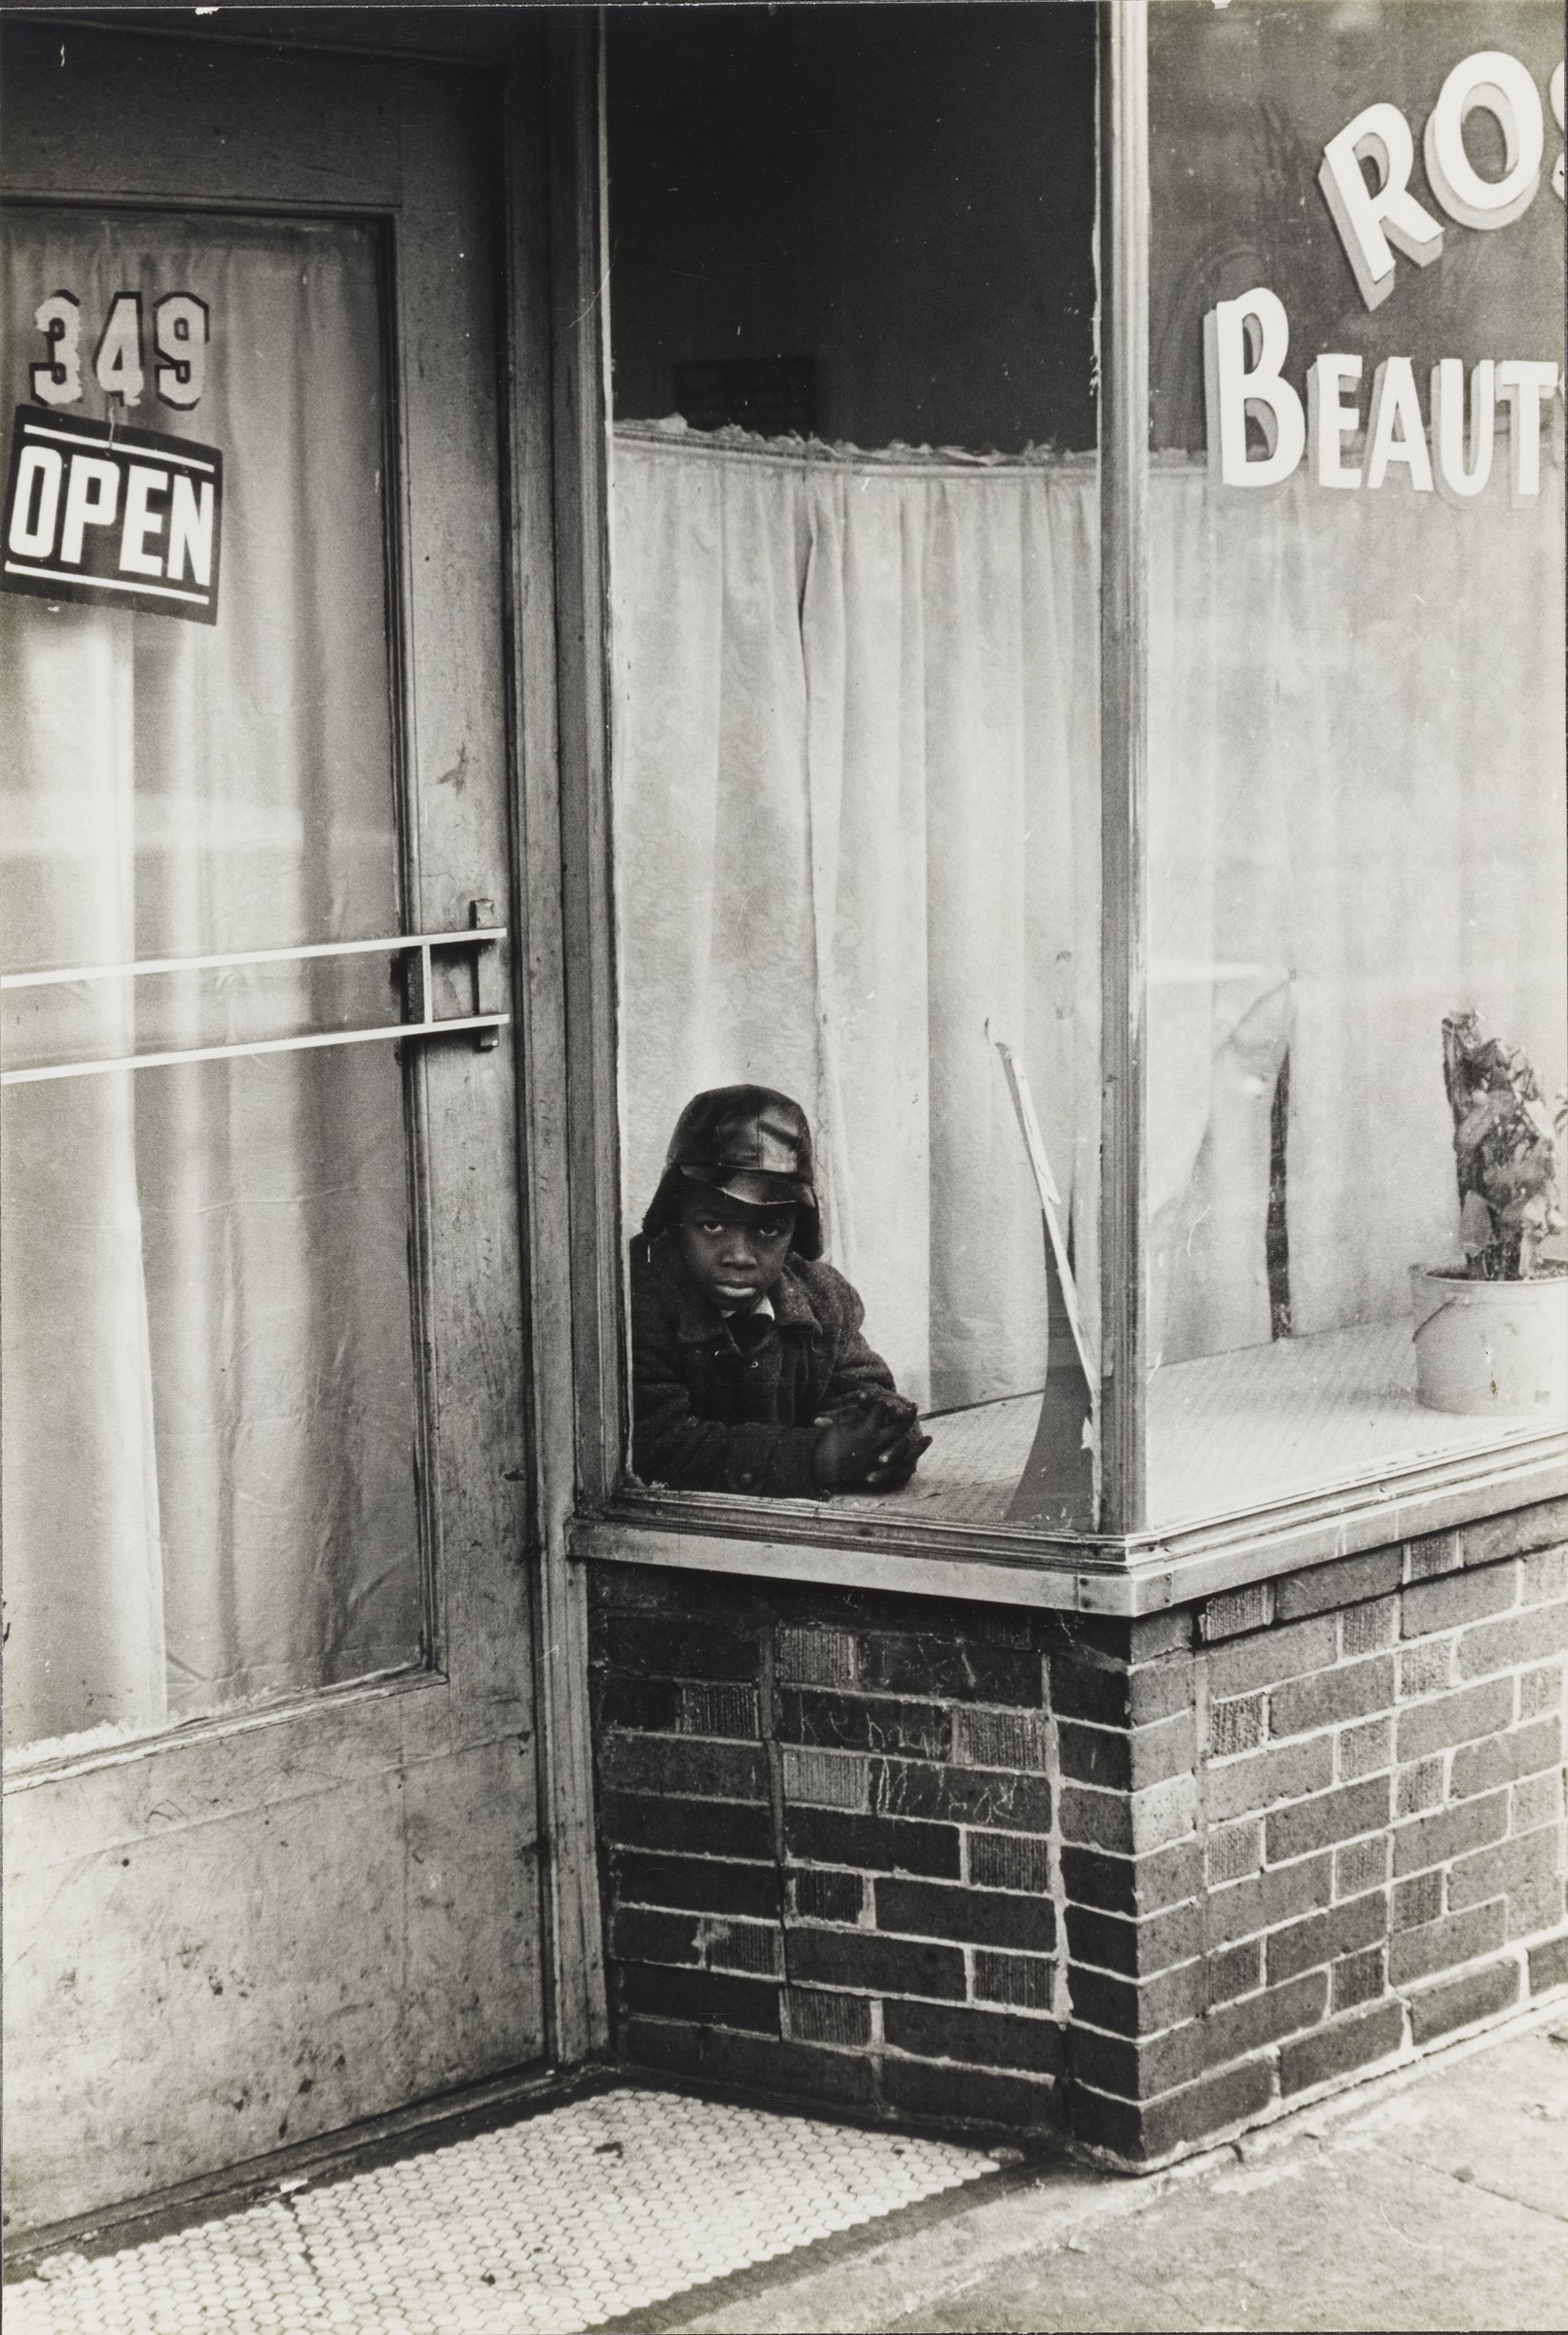 Frank Espada, Boy in the window of a beauty salon; East New York, 1964. Gelatin silver print. Harvard Art Museums/Fogg Museum, Richard and Ronay Menschel Fund for the Acquisition of Photographs, 2018.103.